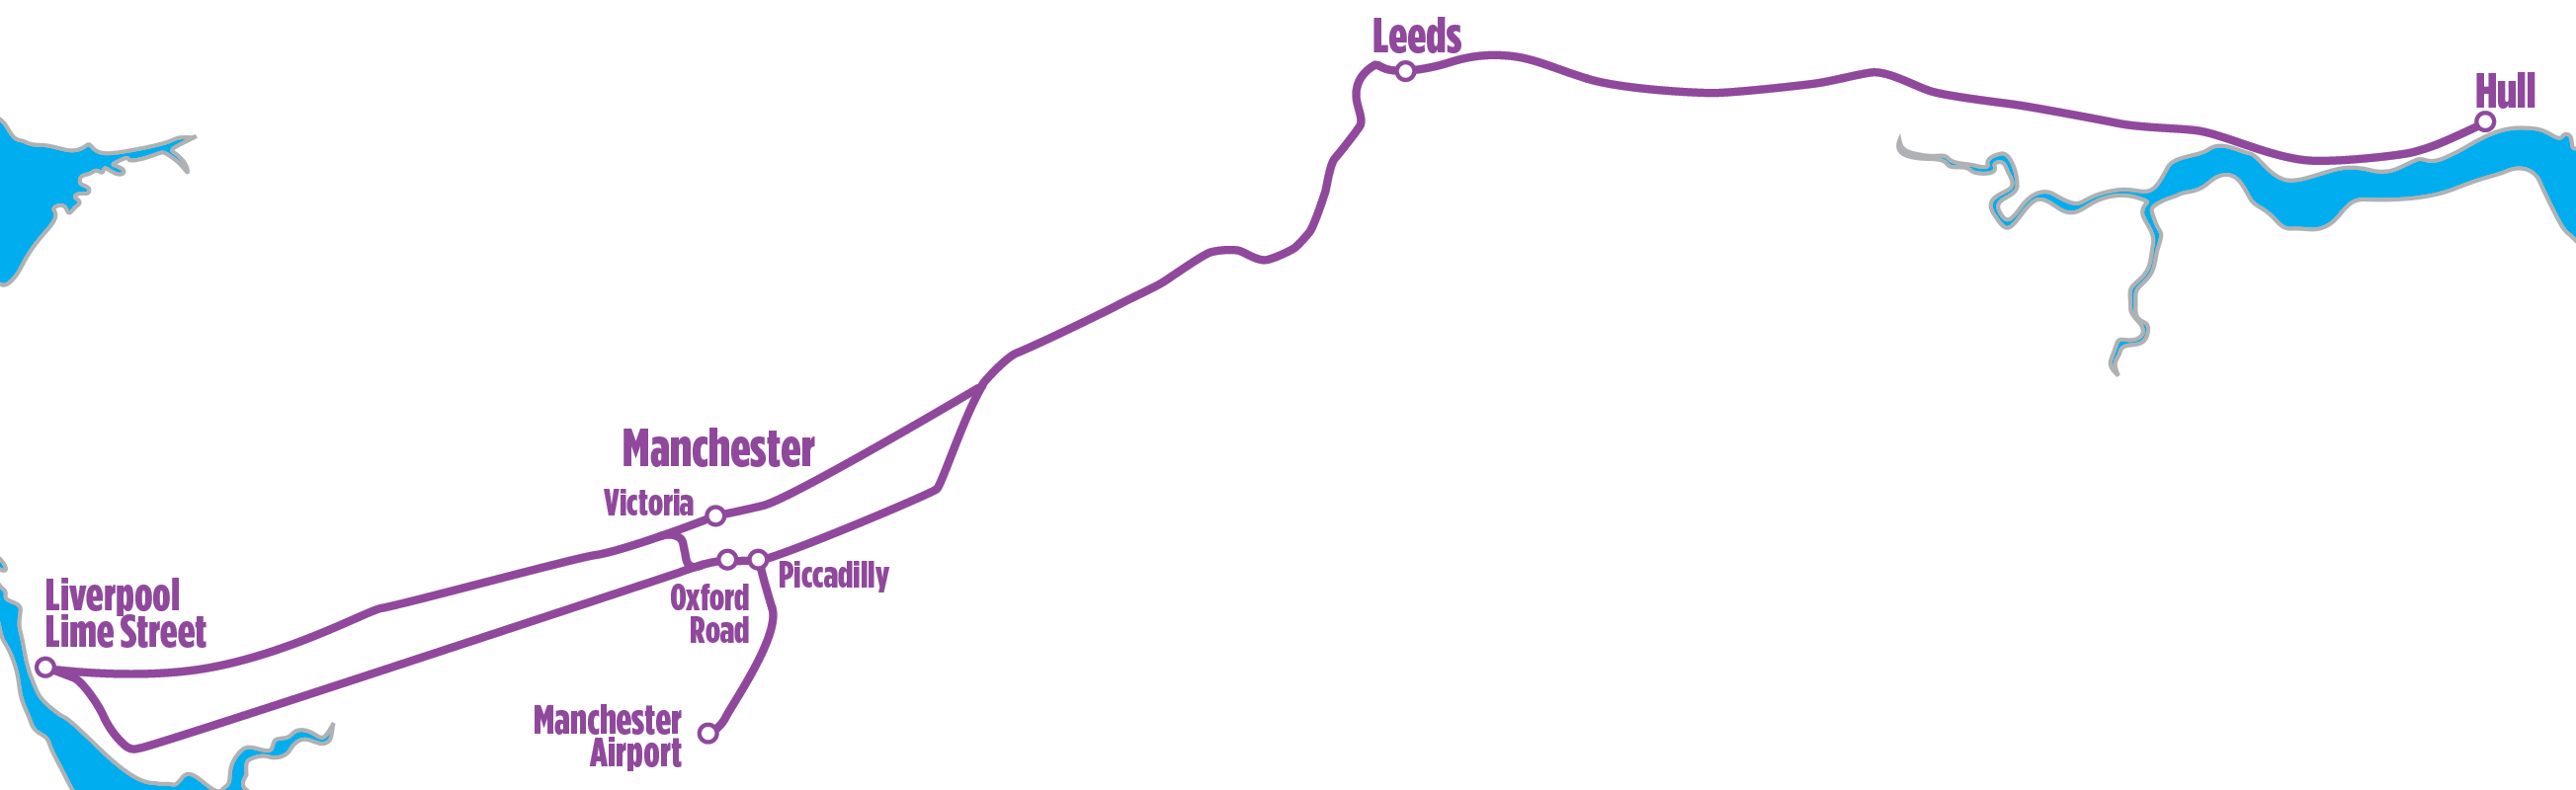 Liverpool to Hull route map